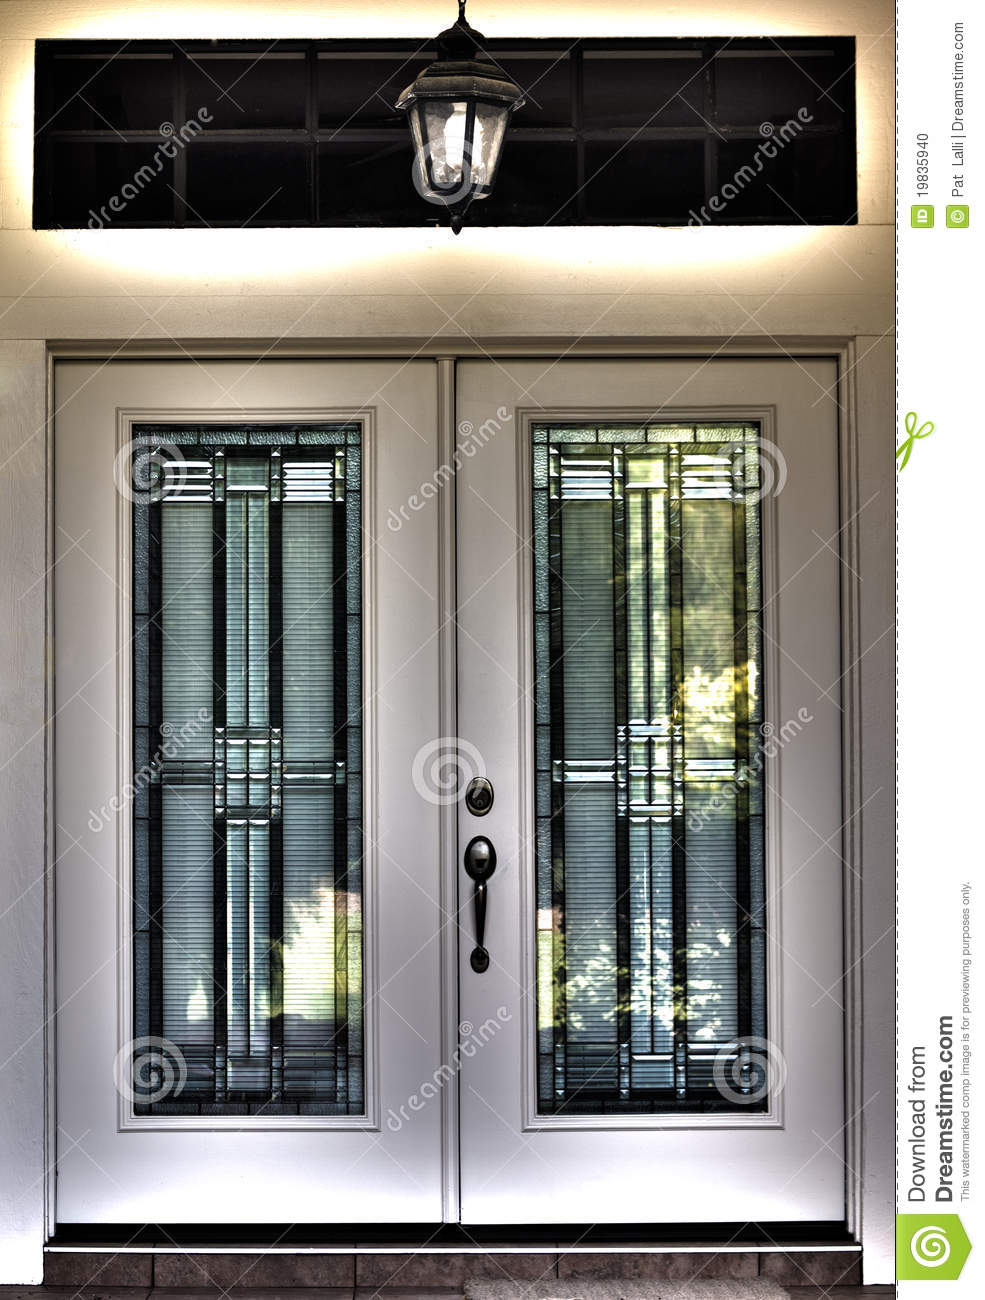 Hdr surreal double front door stock photo image 19835940 for Double door house entrance